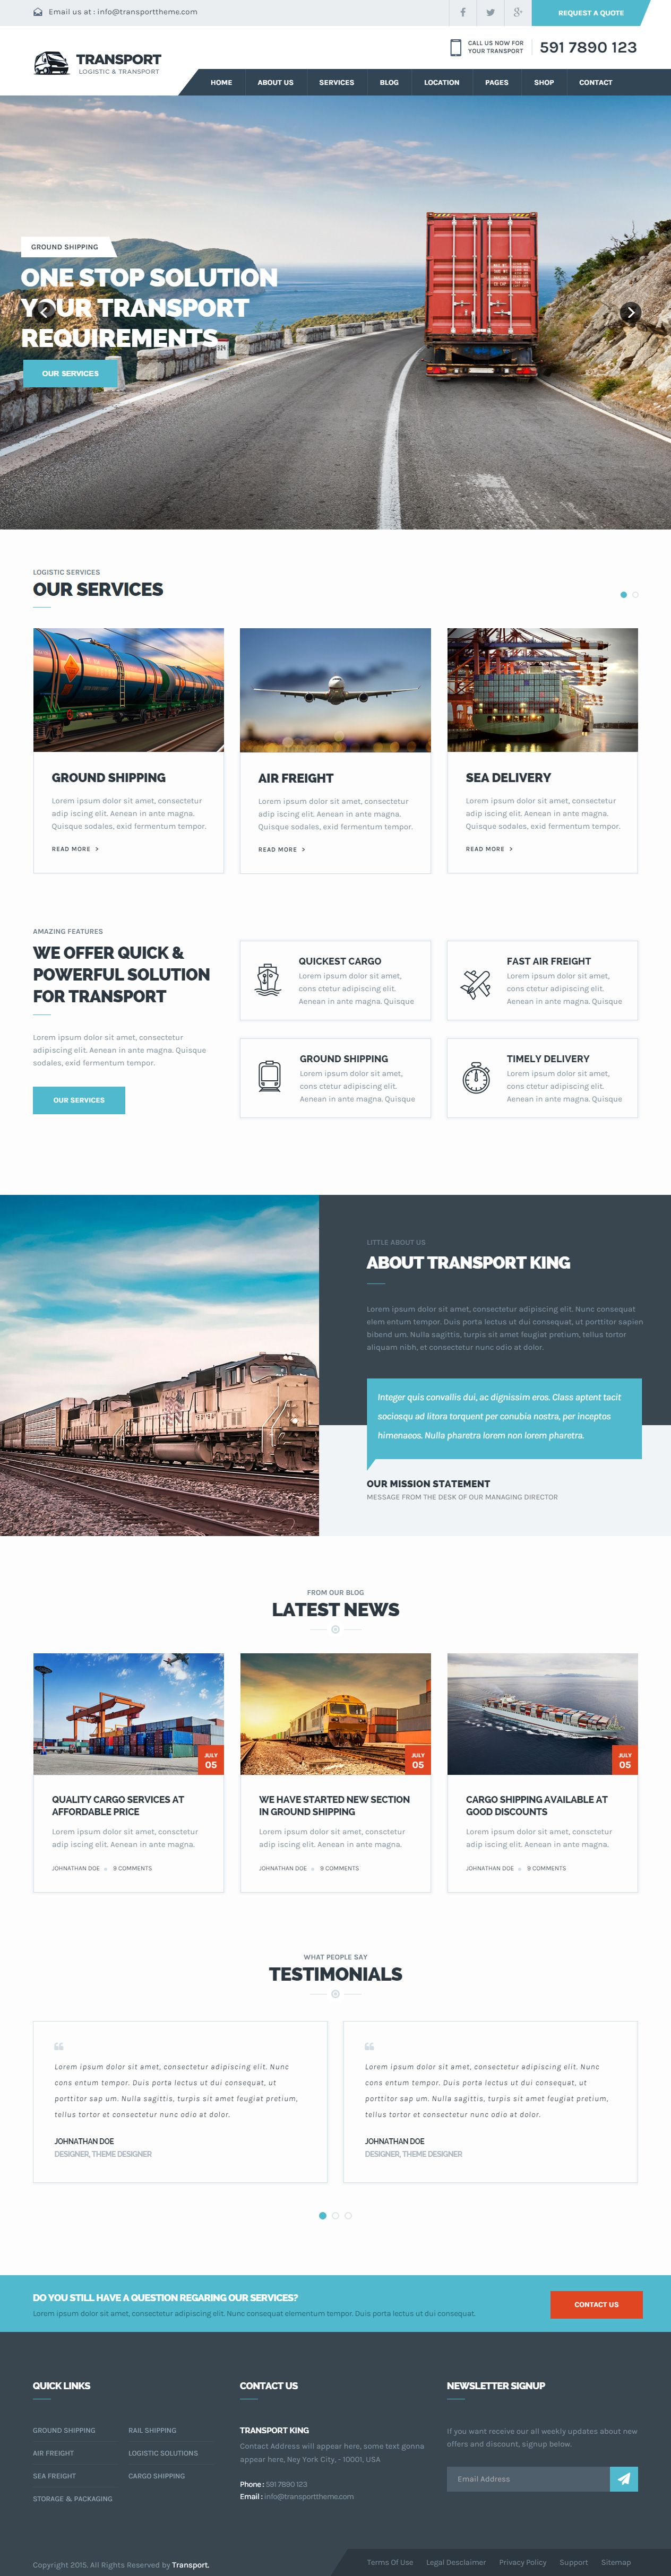 Transport is Premium full Responsive Retina #Logistic #HTML5 ...